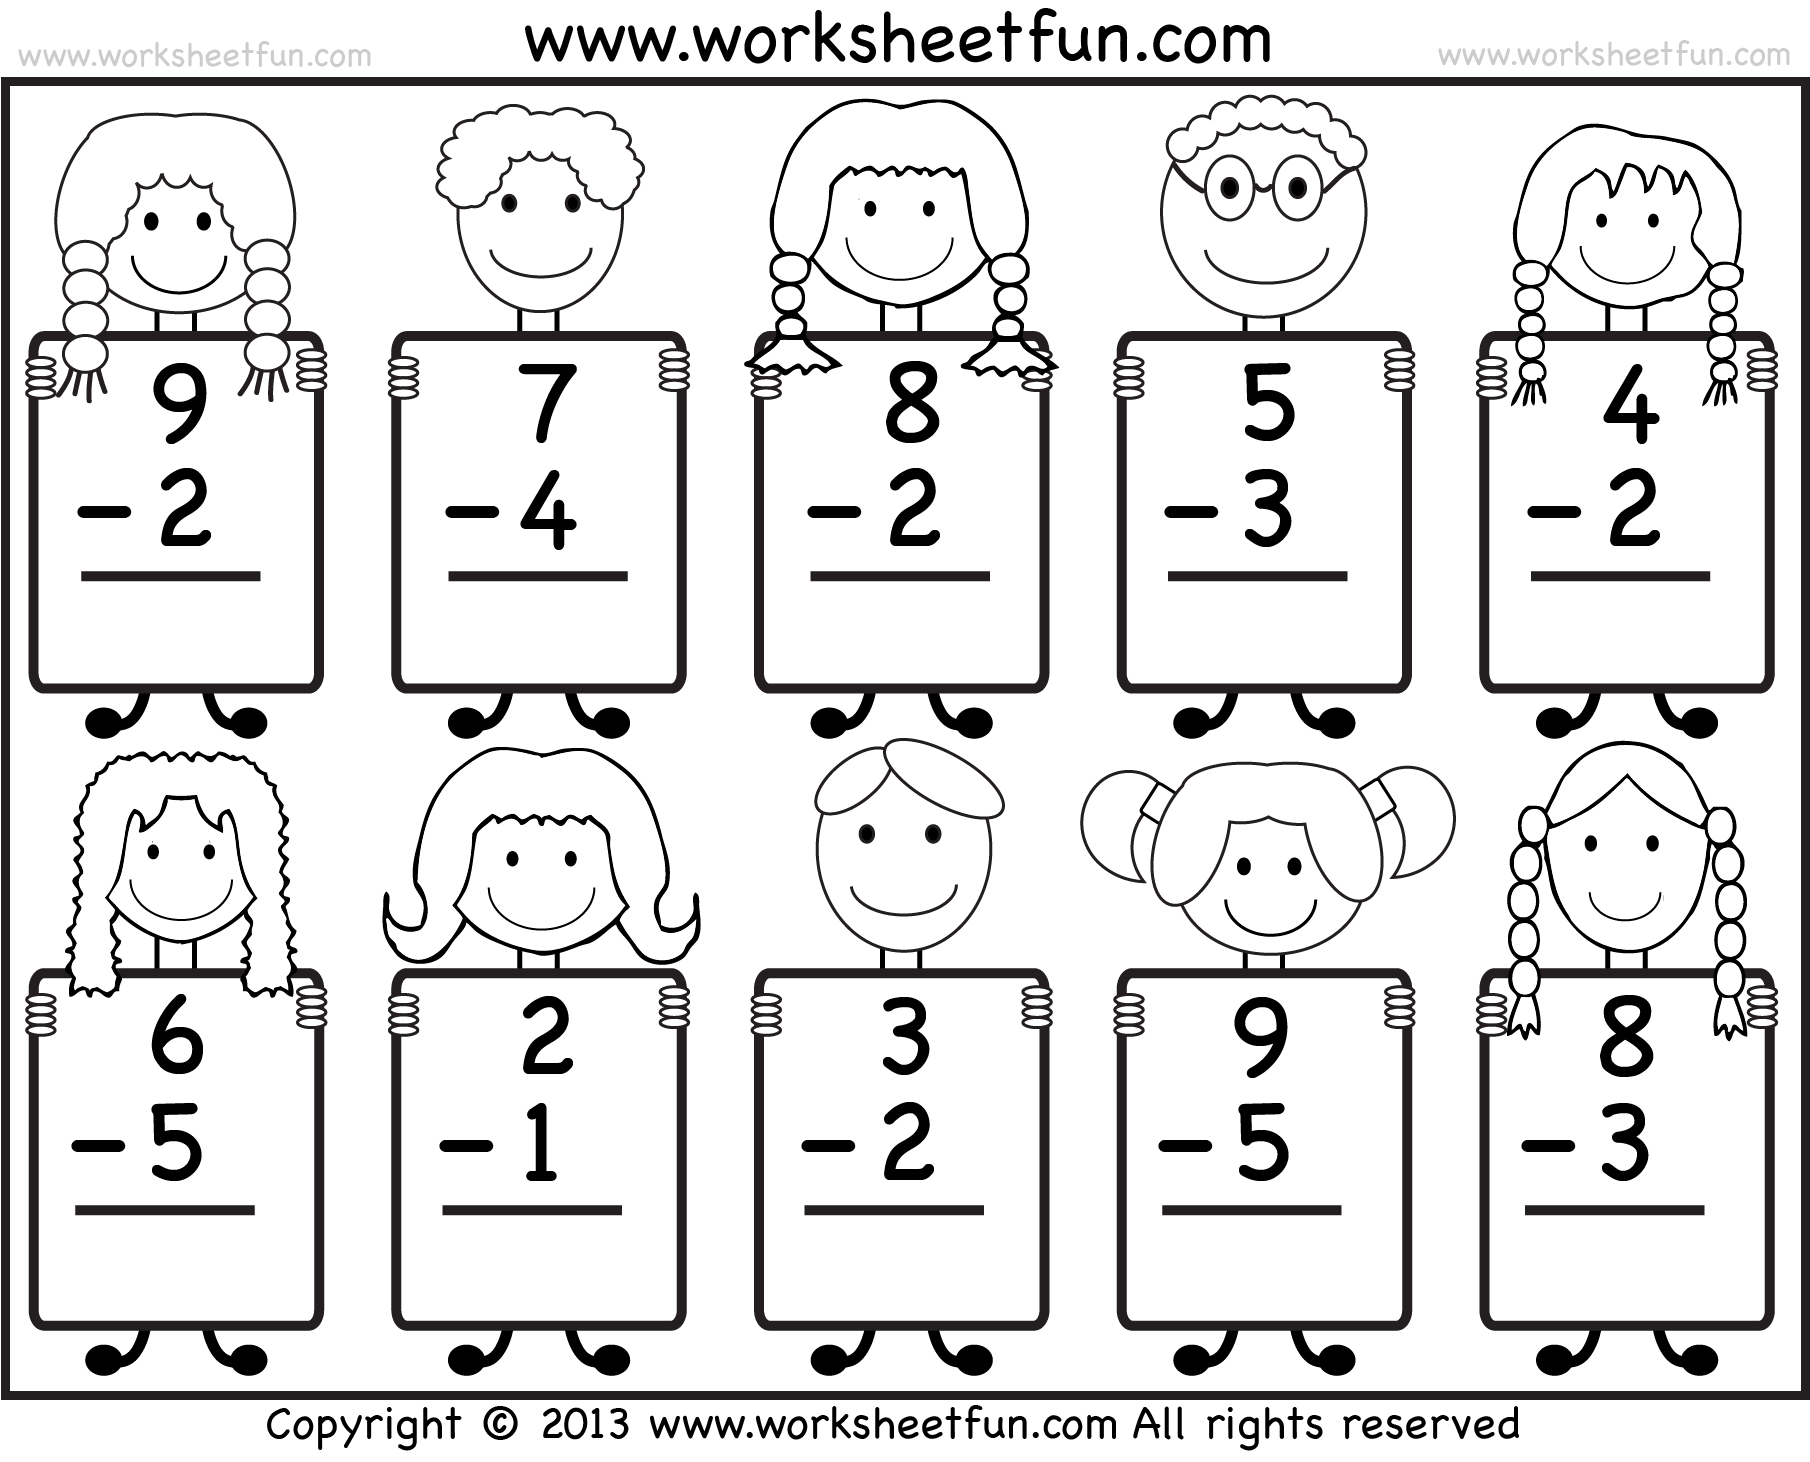 Worksheet Kindergarten Subtraction Worksheets beginner subtraction 10 kindergarten worksheets subtraction